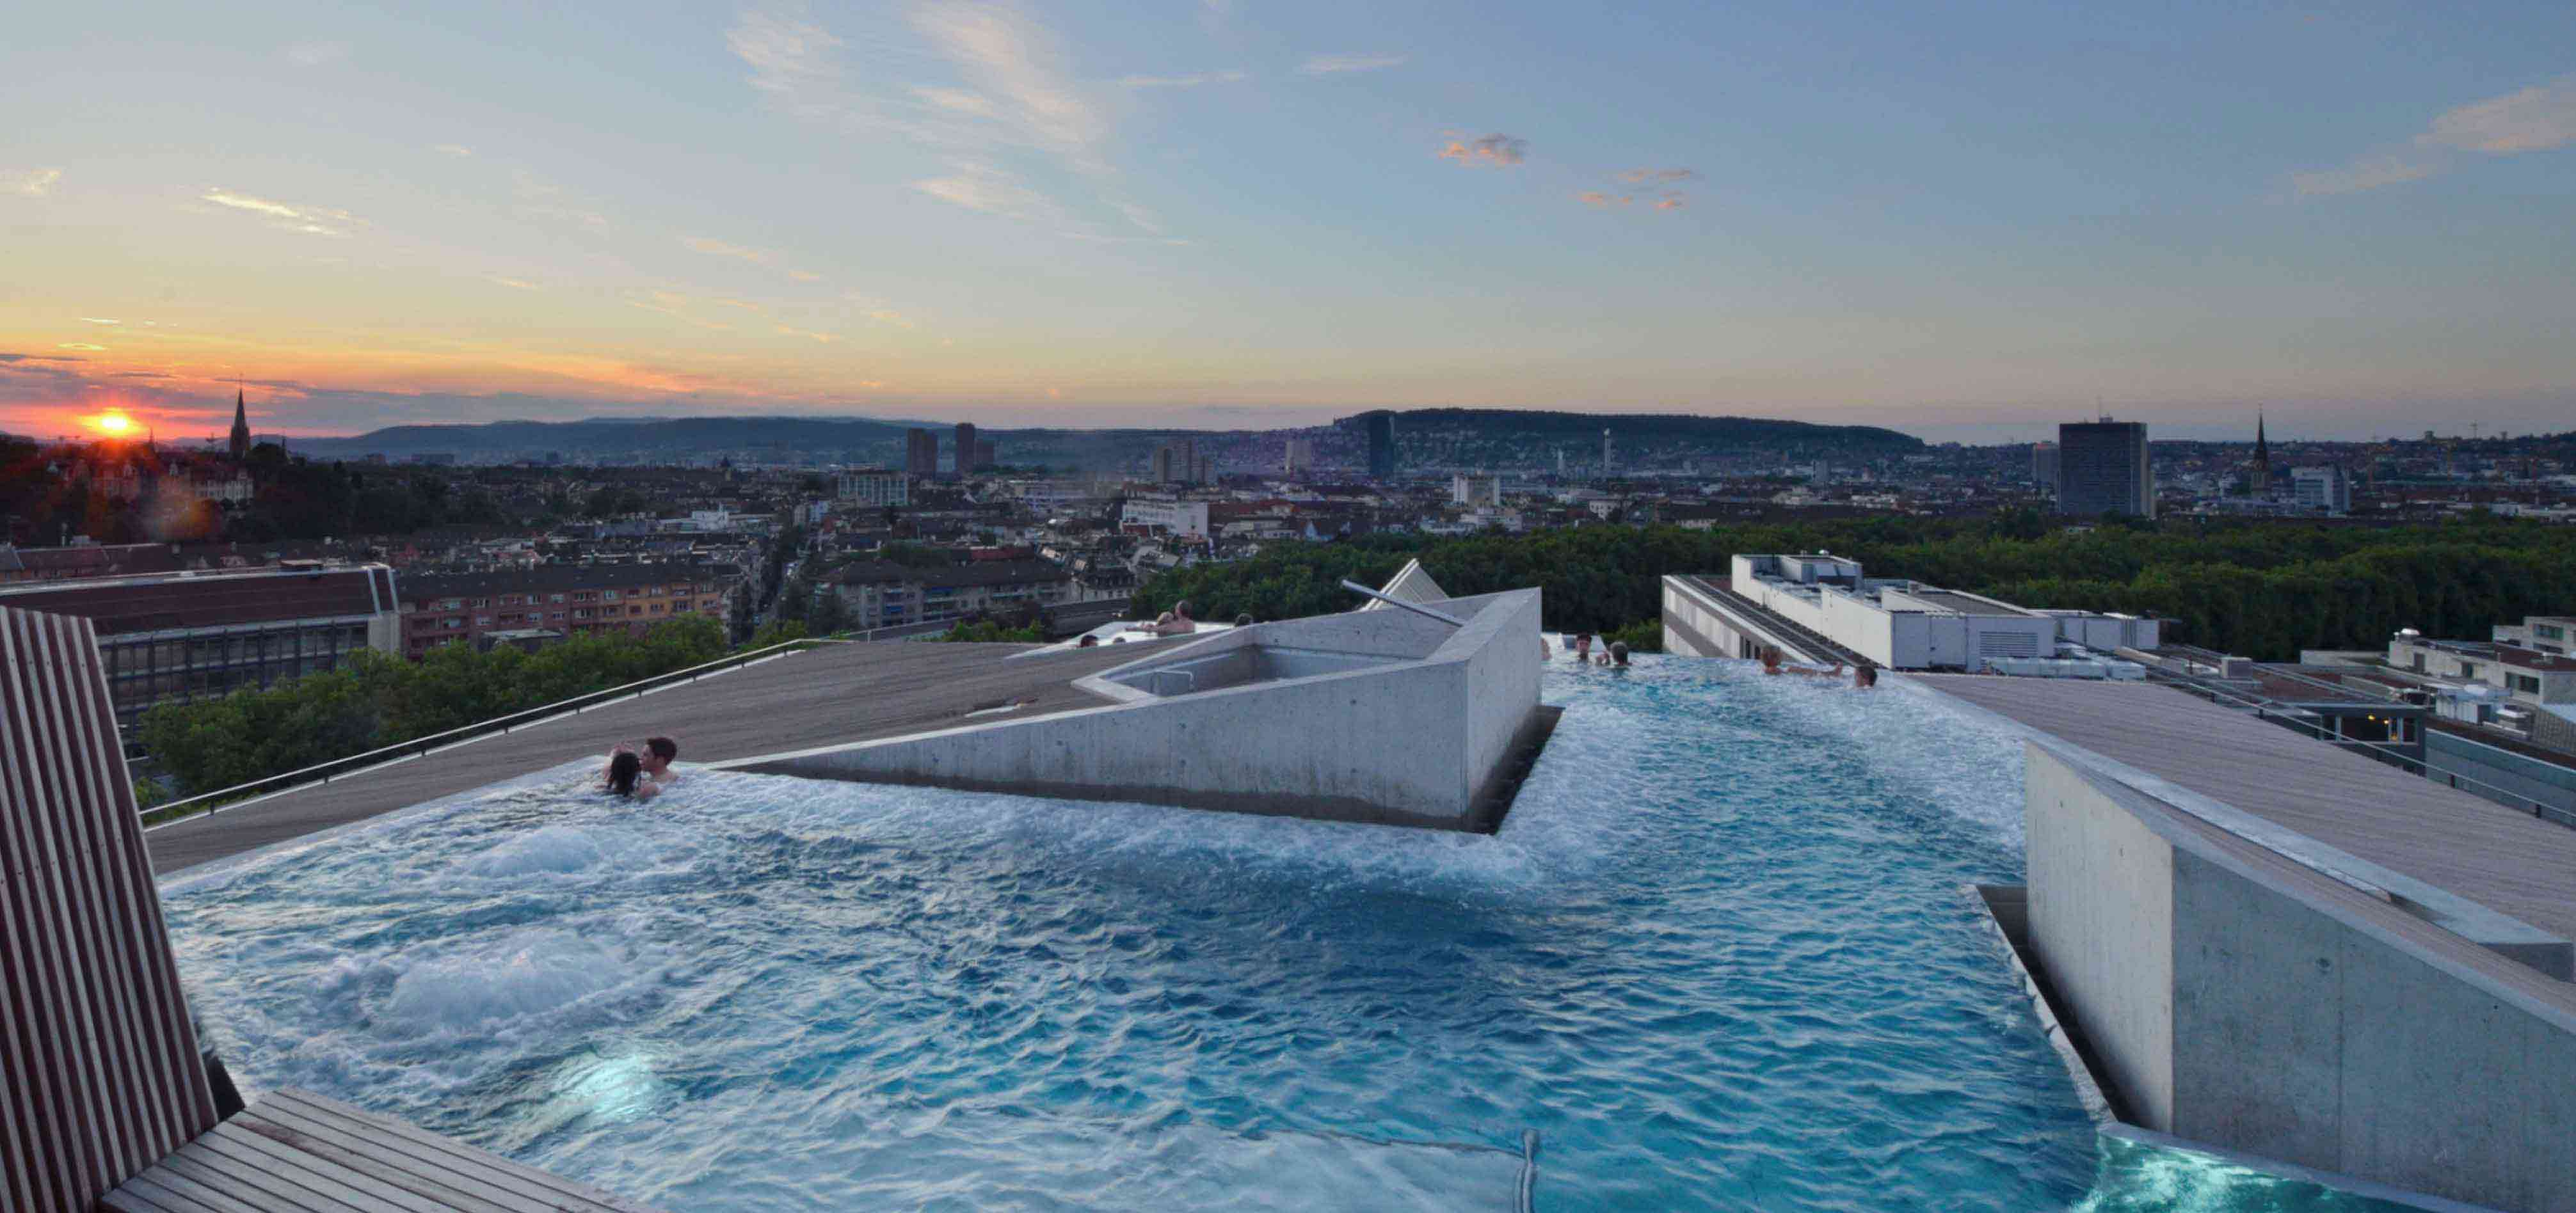 Soul Seed Travel Guide The Best Spa And Luxury Hotels In Switzerland